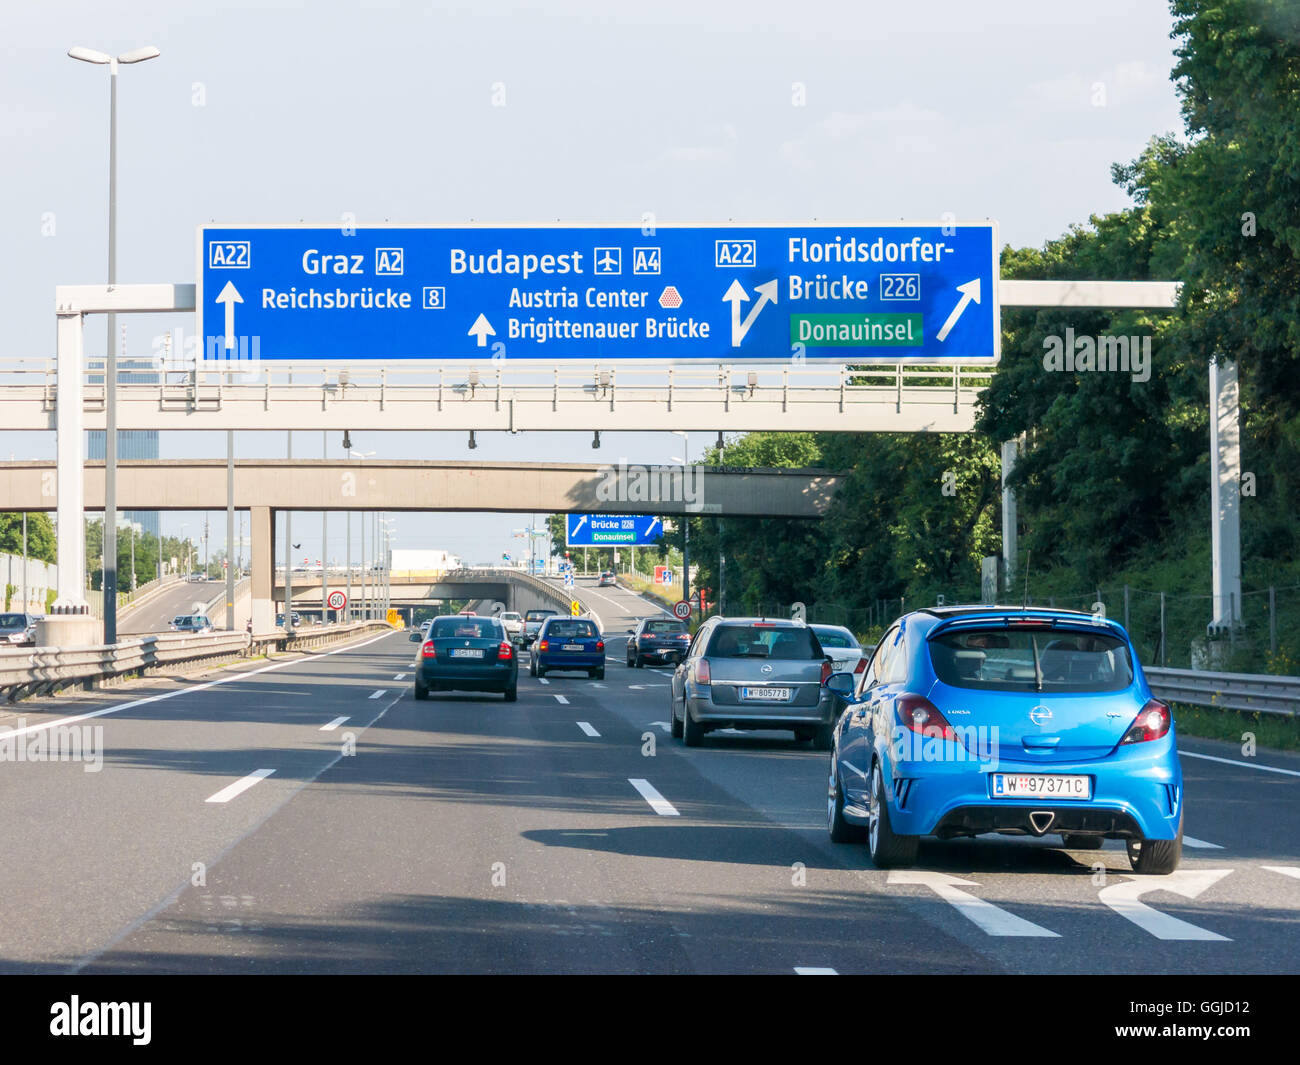 autobahn sign stockfotos autobahn sign bilder alamy. Black Bedroom Furniture Sets. Home Design Ideas